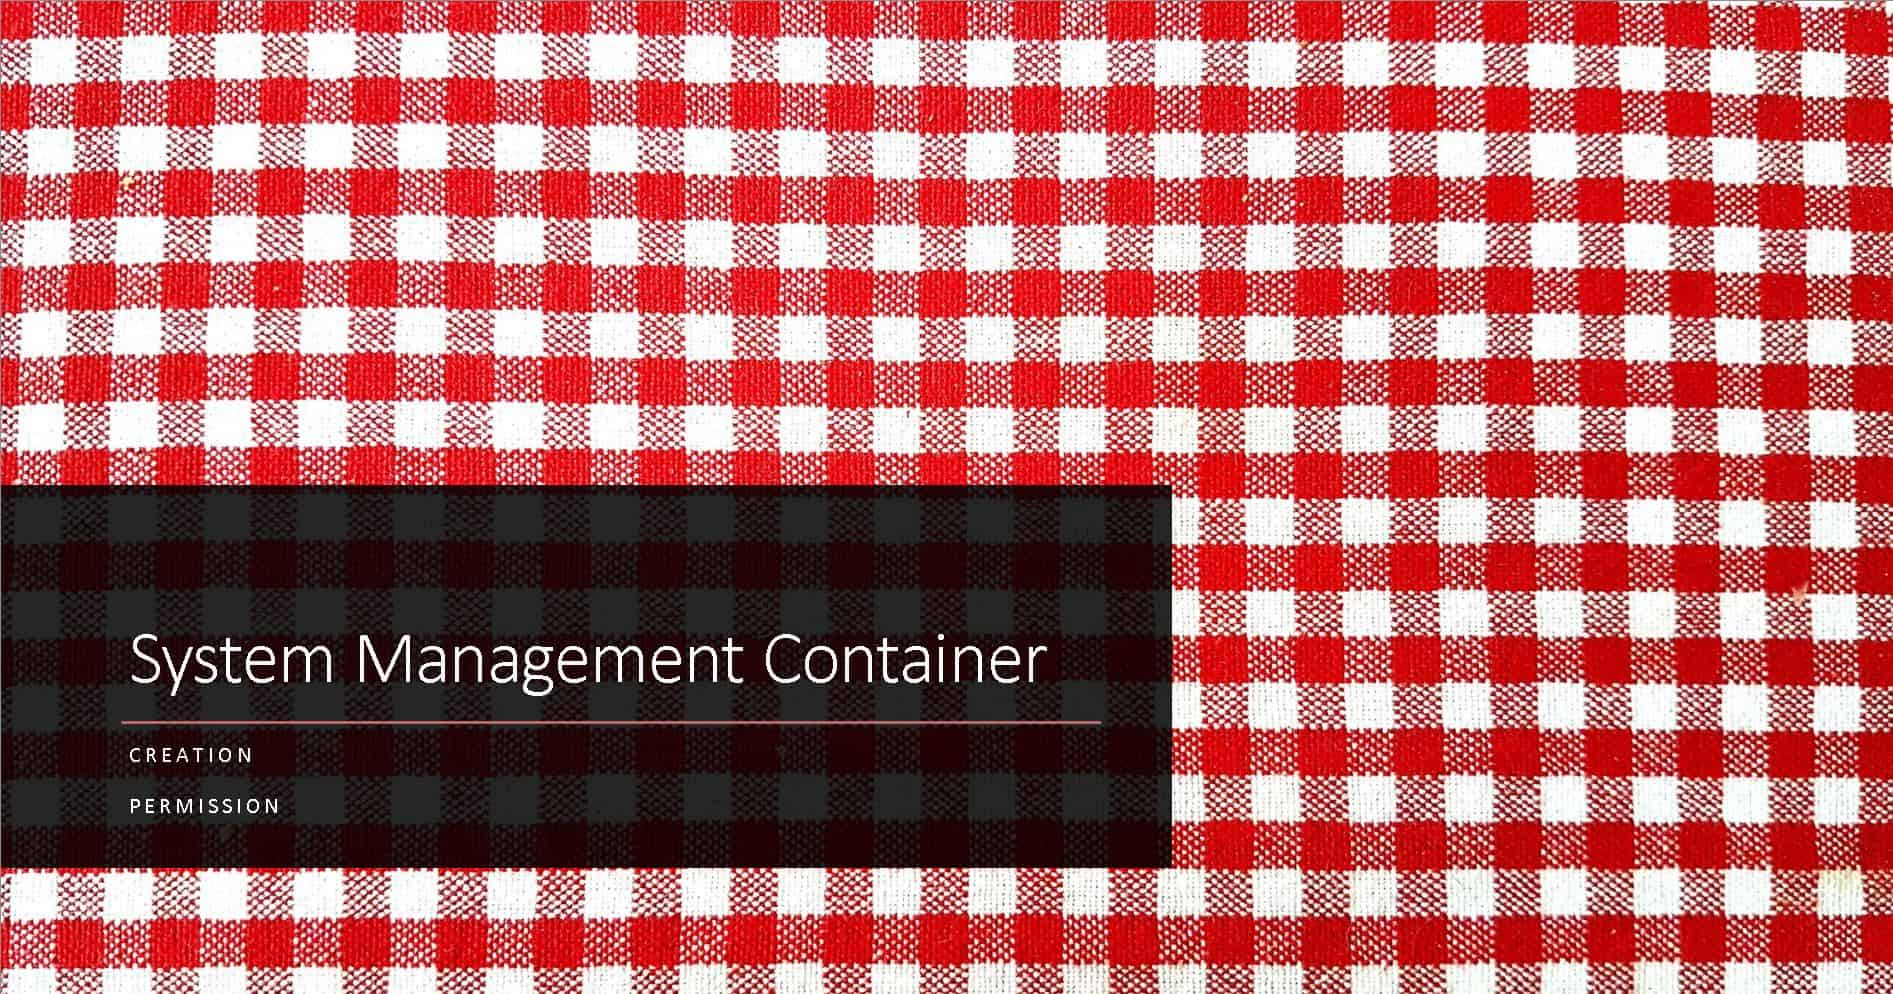 Create System Management Container